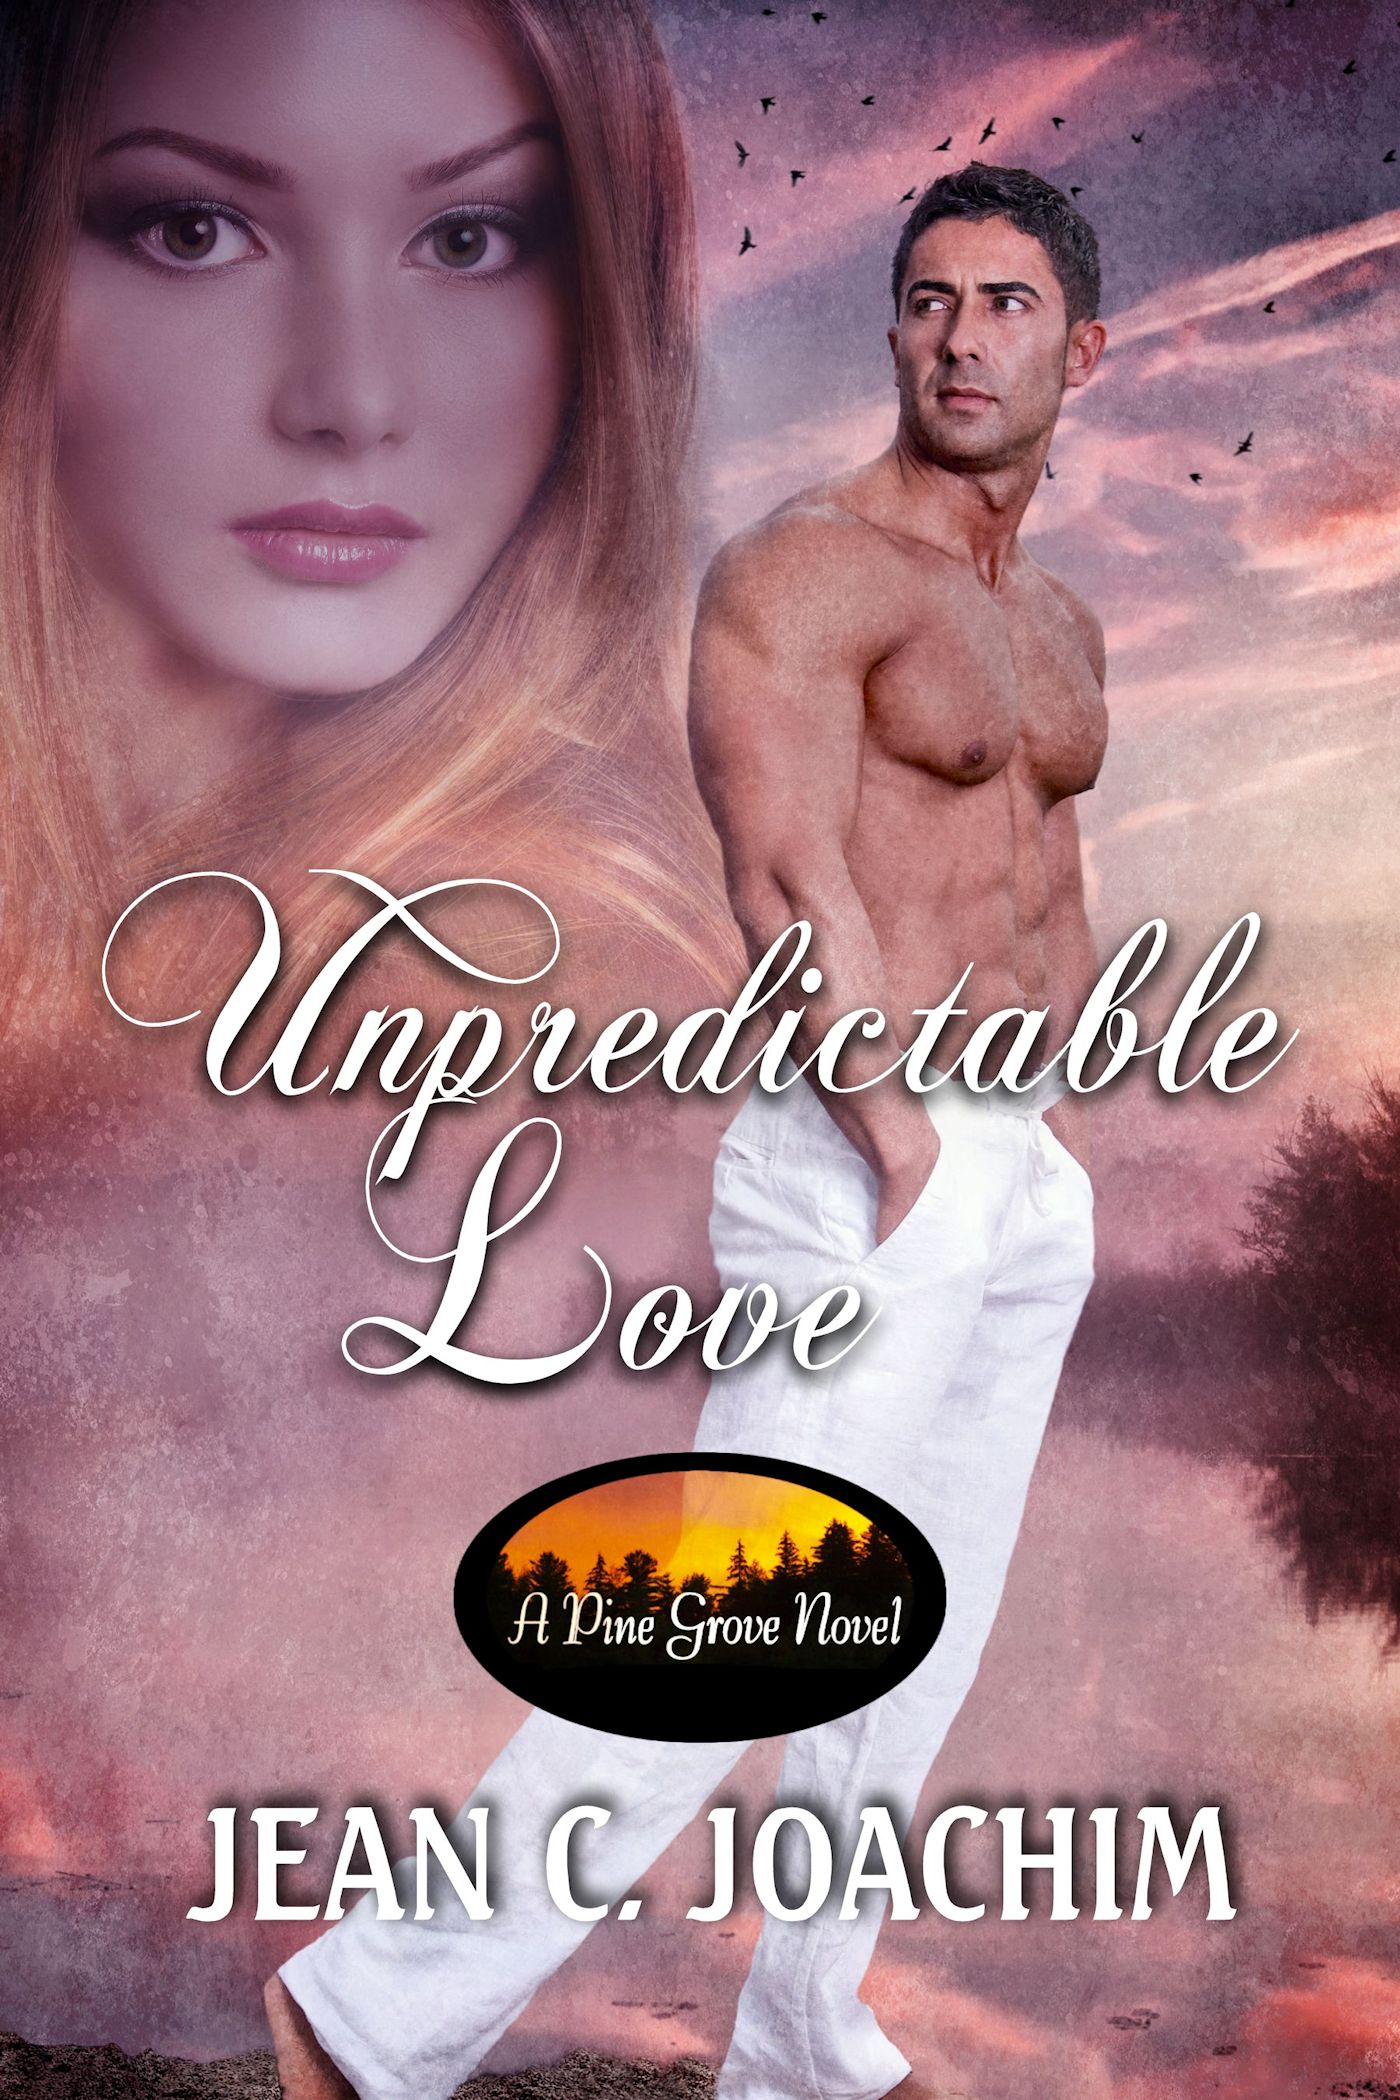 UnpredictableLove_Kindle